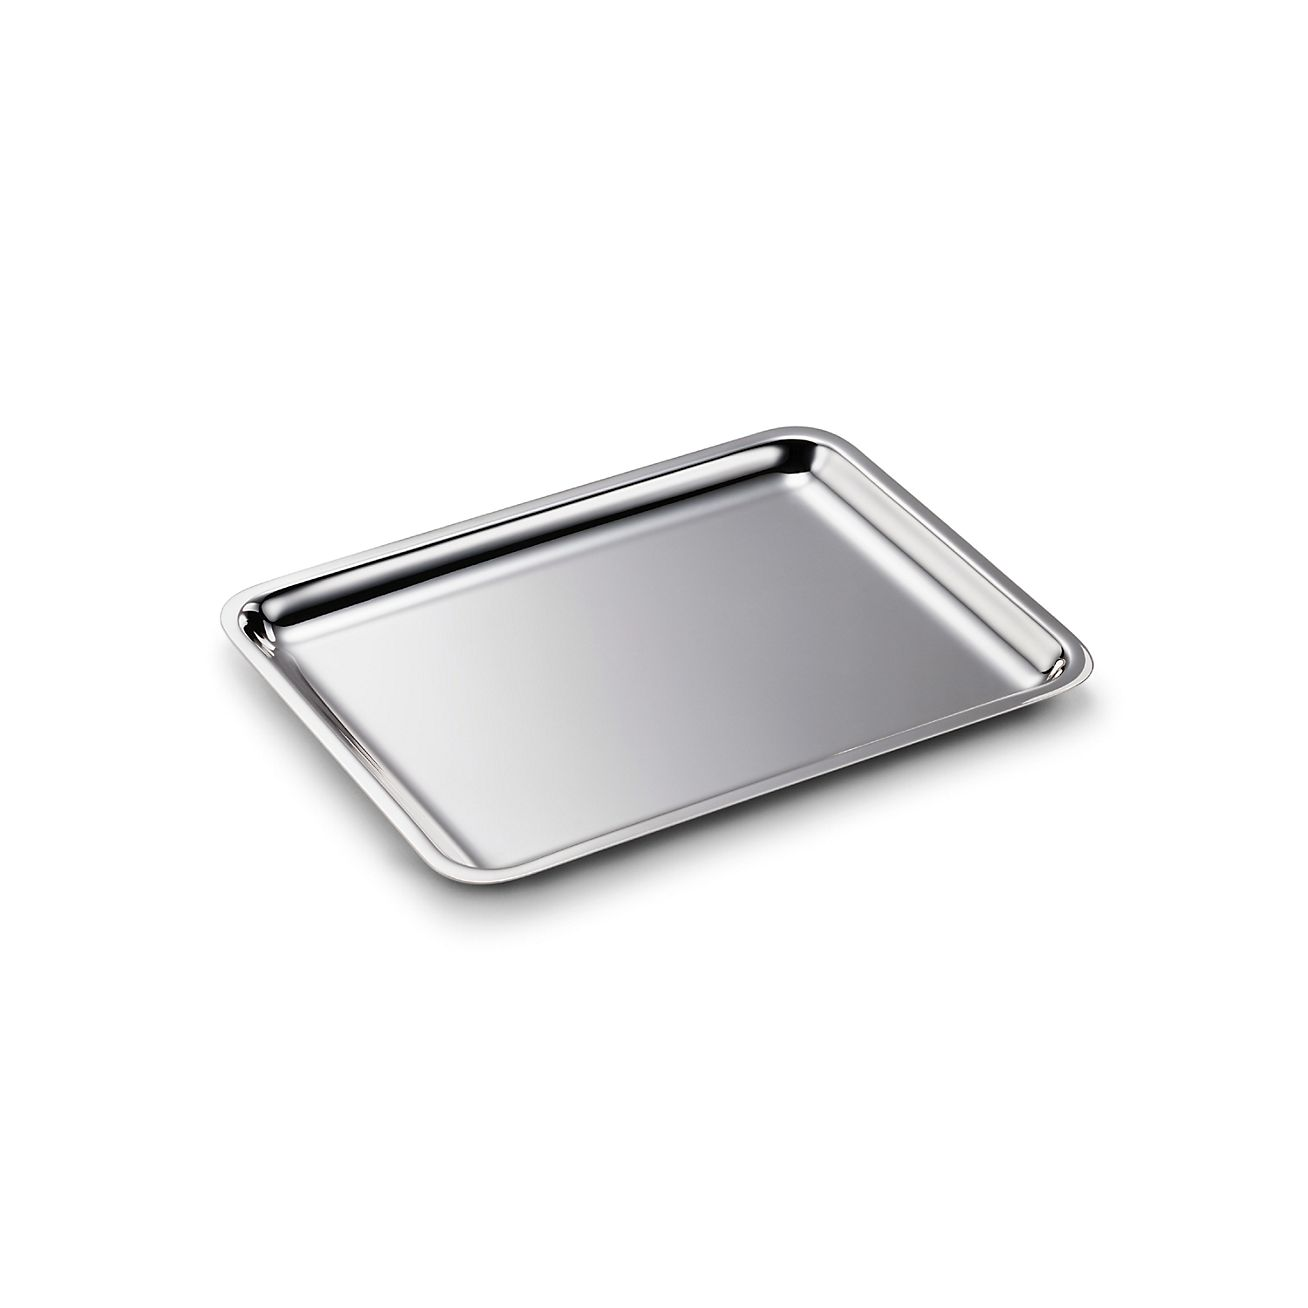 tiffany classic rectangular tray in sterling silver tiffany co